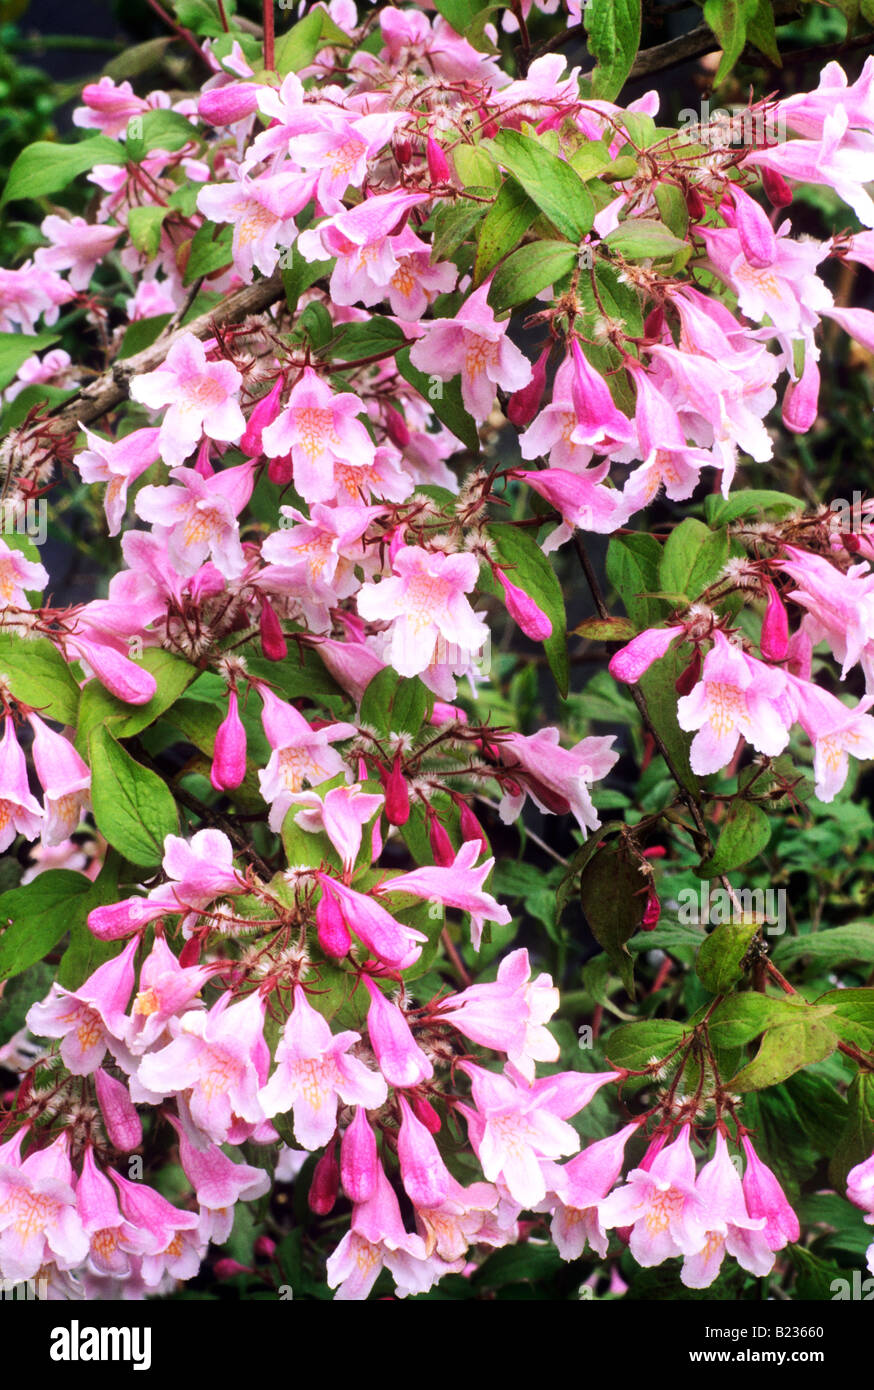 Kolkwitzia amabilis pink cloud beauty bush pink flower garden kolkwitzia amabilis pink cloud beauty bush pink flower garden plant mightylinksfo